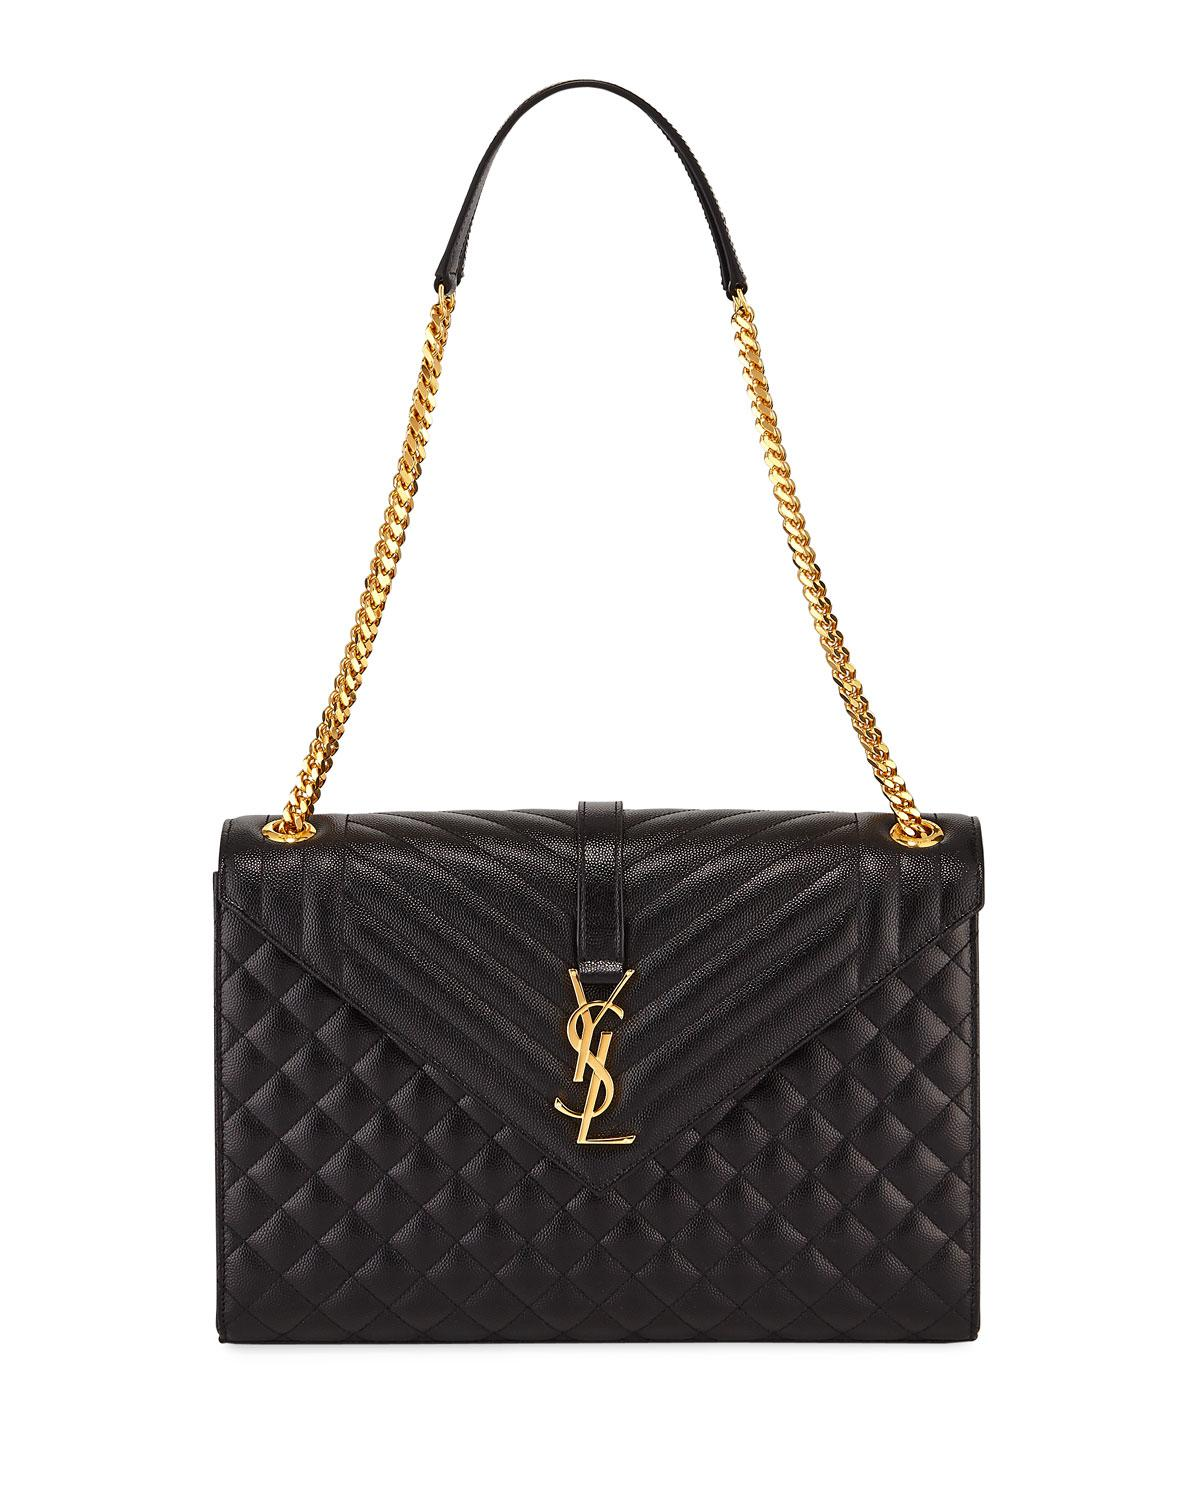 36d33c1653 Saint Laurent Monogram Ysl V-flap Large Tri-quilt Envelope Chain ...